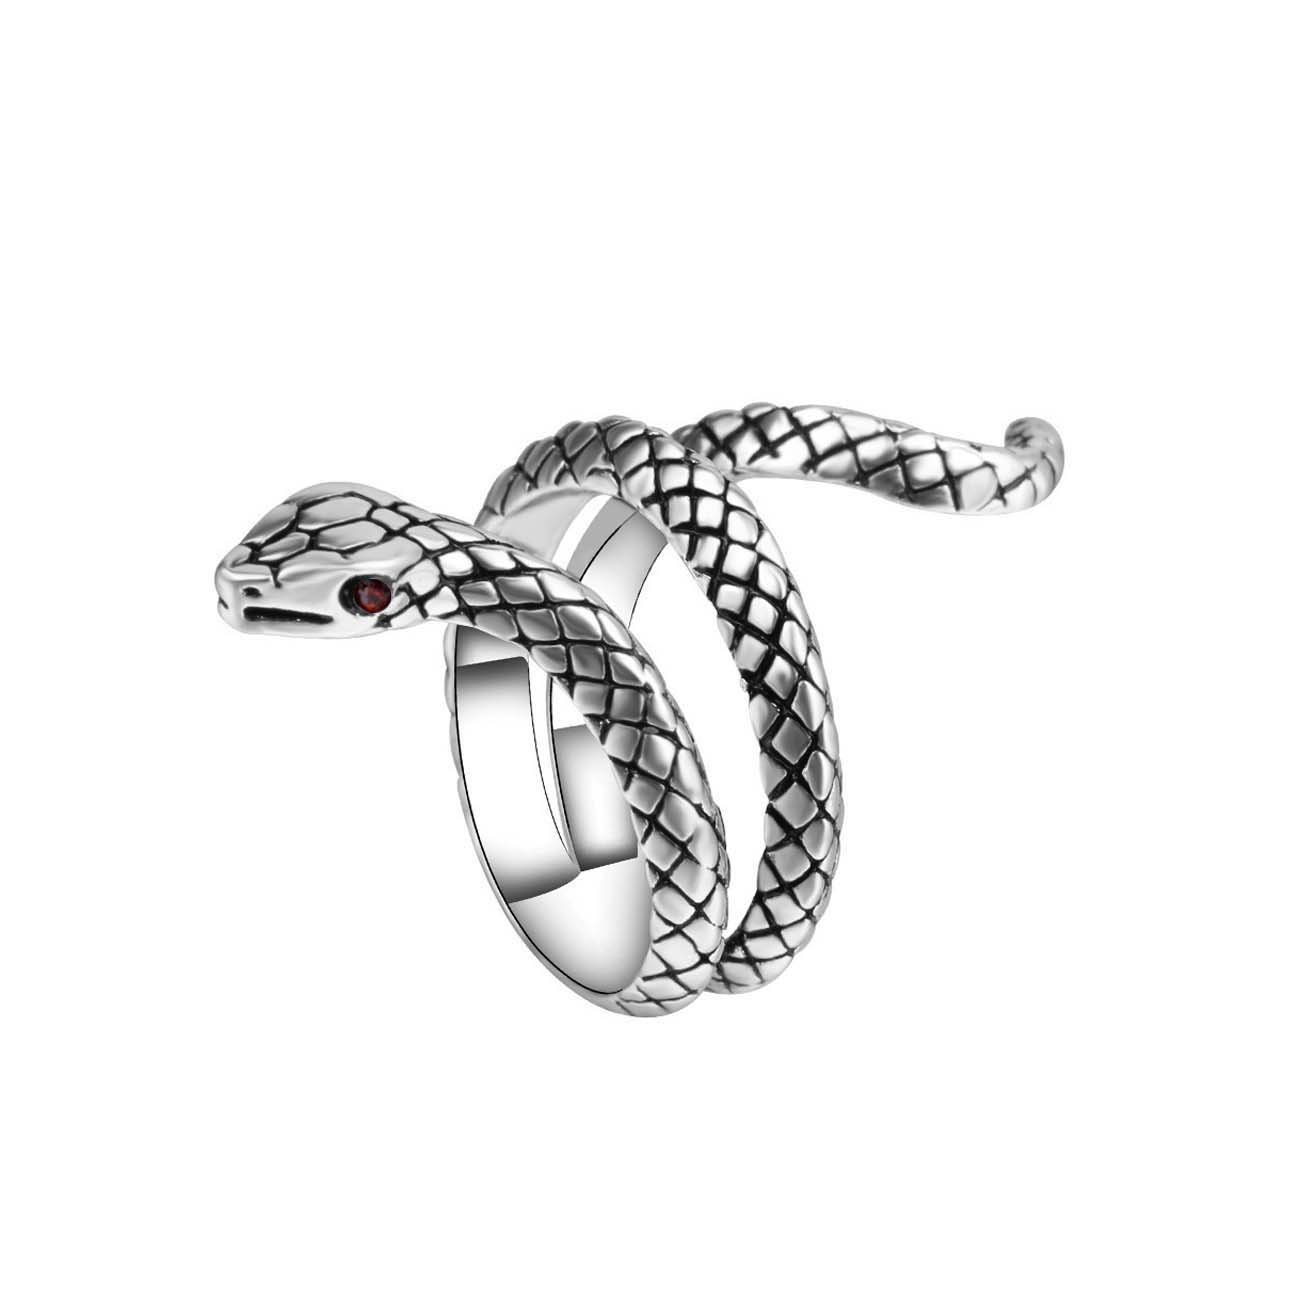 BRBAM Adjustable Gothic Punk Style Coiled Snake Ring Unisex Retro Jewelry Gift (Style 1)